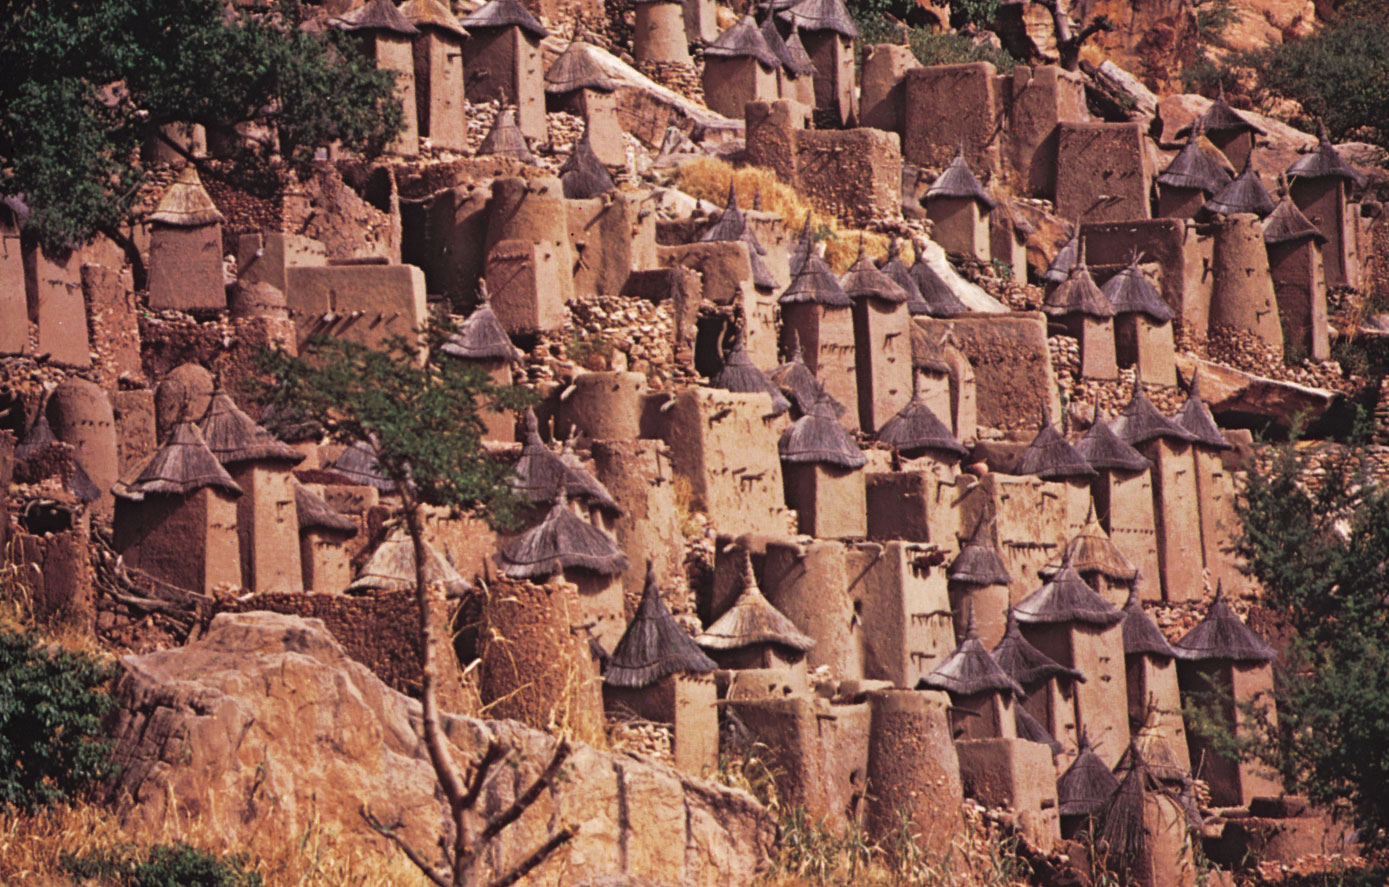 African Dogon Tribe Reveals Mans True Origins Kathy J Forti Phd